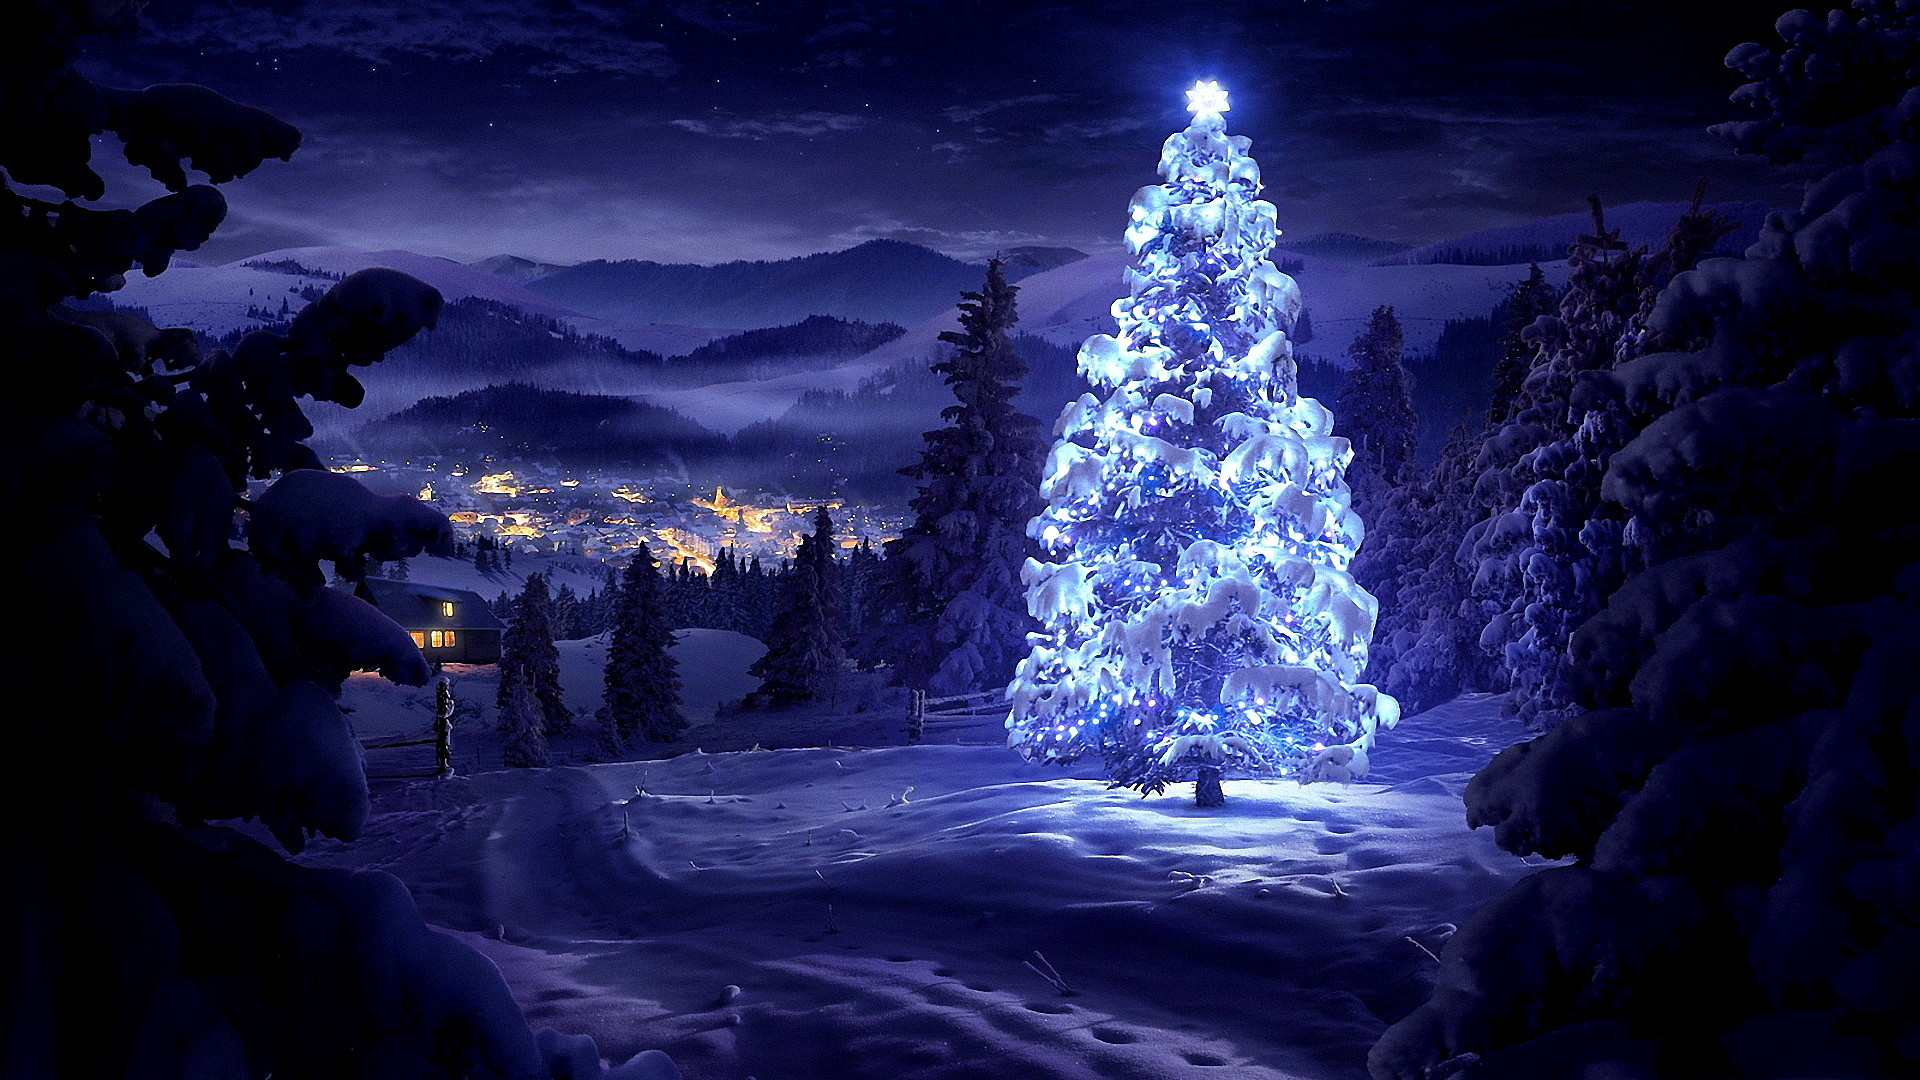 Christmas tree wallpaper To download backgrounds natural scenery 1920x1080